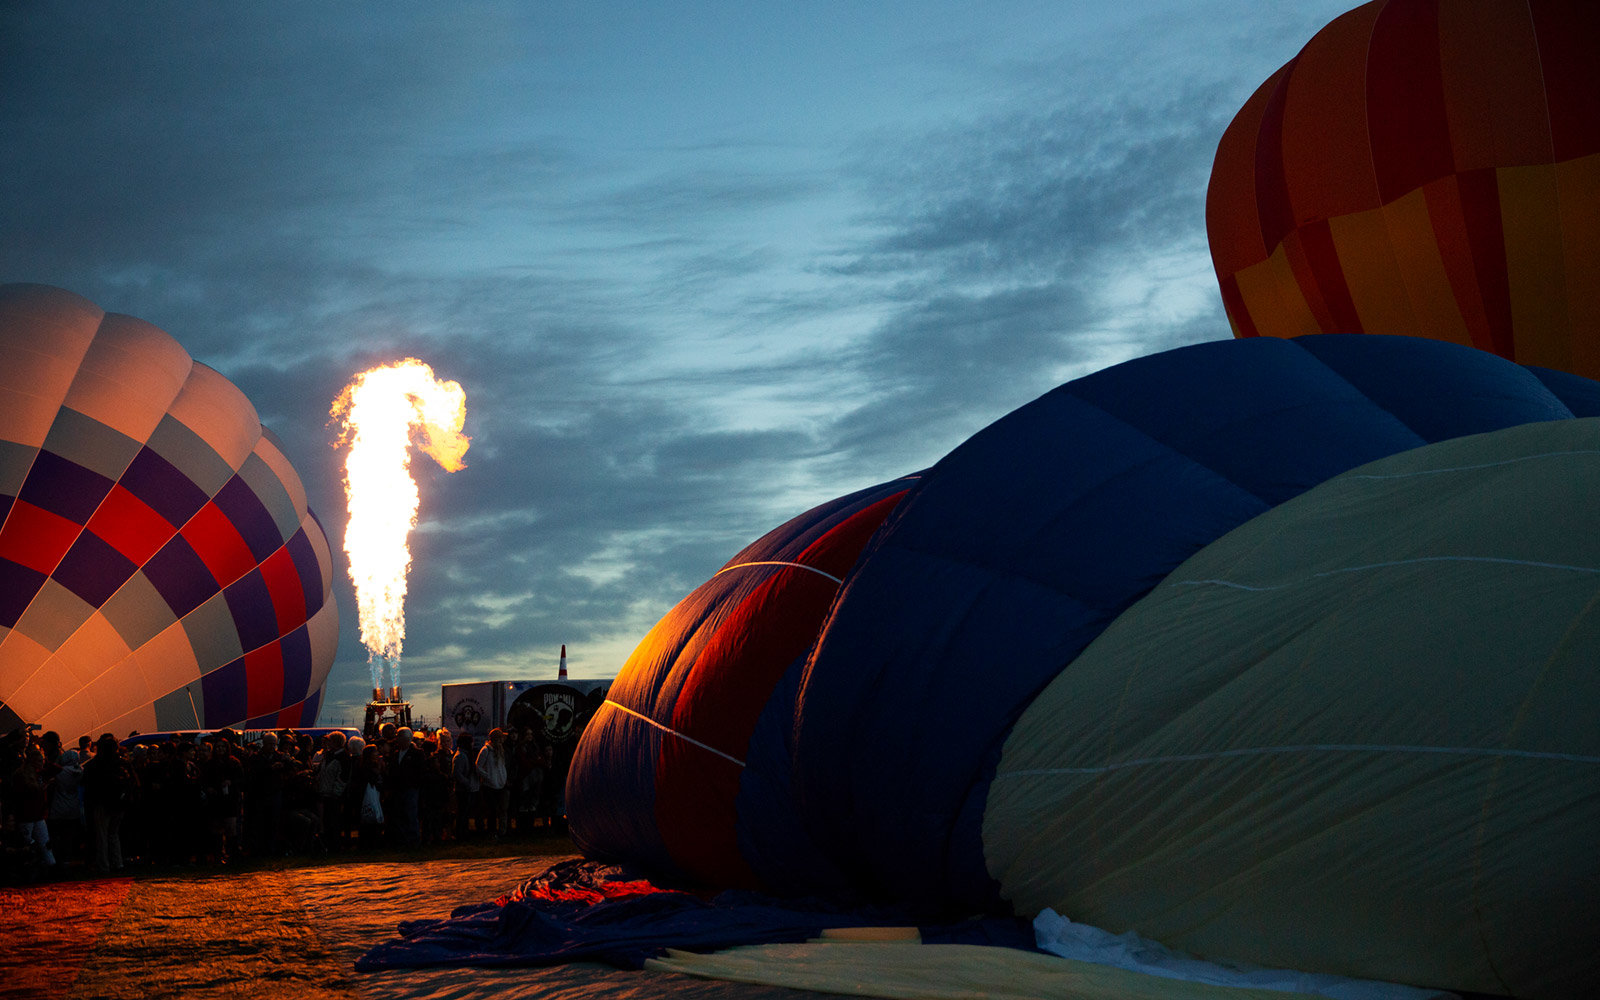 Dawn Patrol at the Albuquerque International Balloon Fiesta